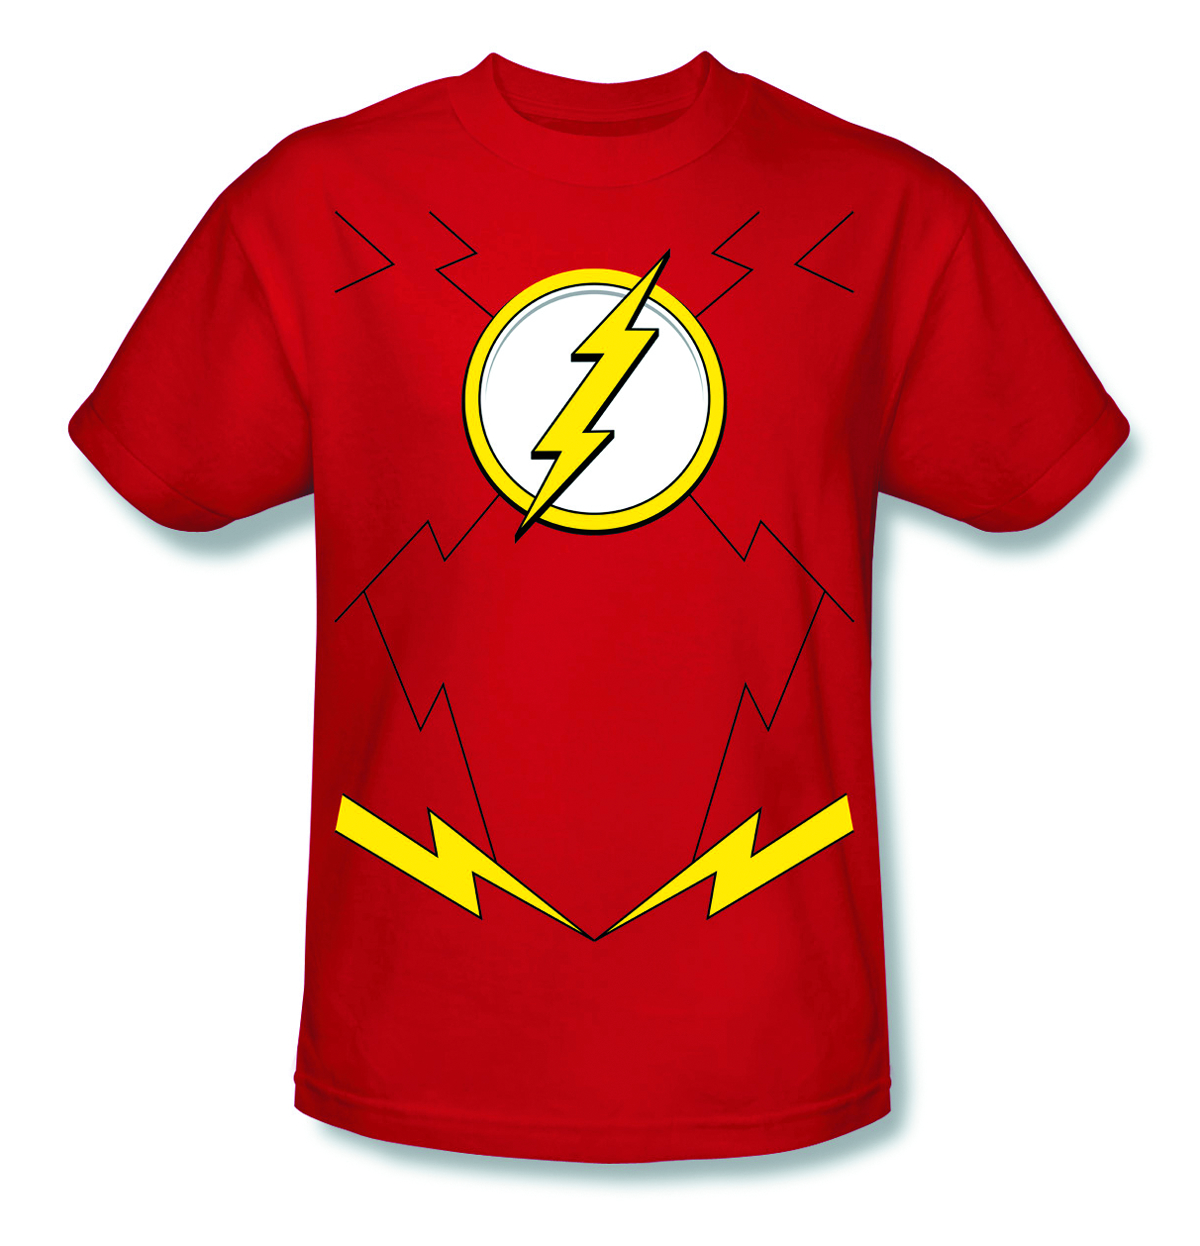 FLASH NEW 52 COSTUME T/S MED